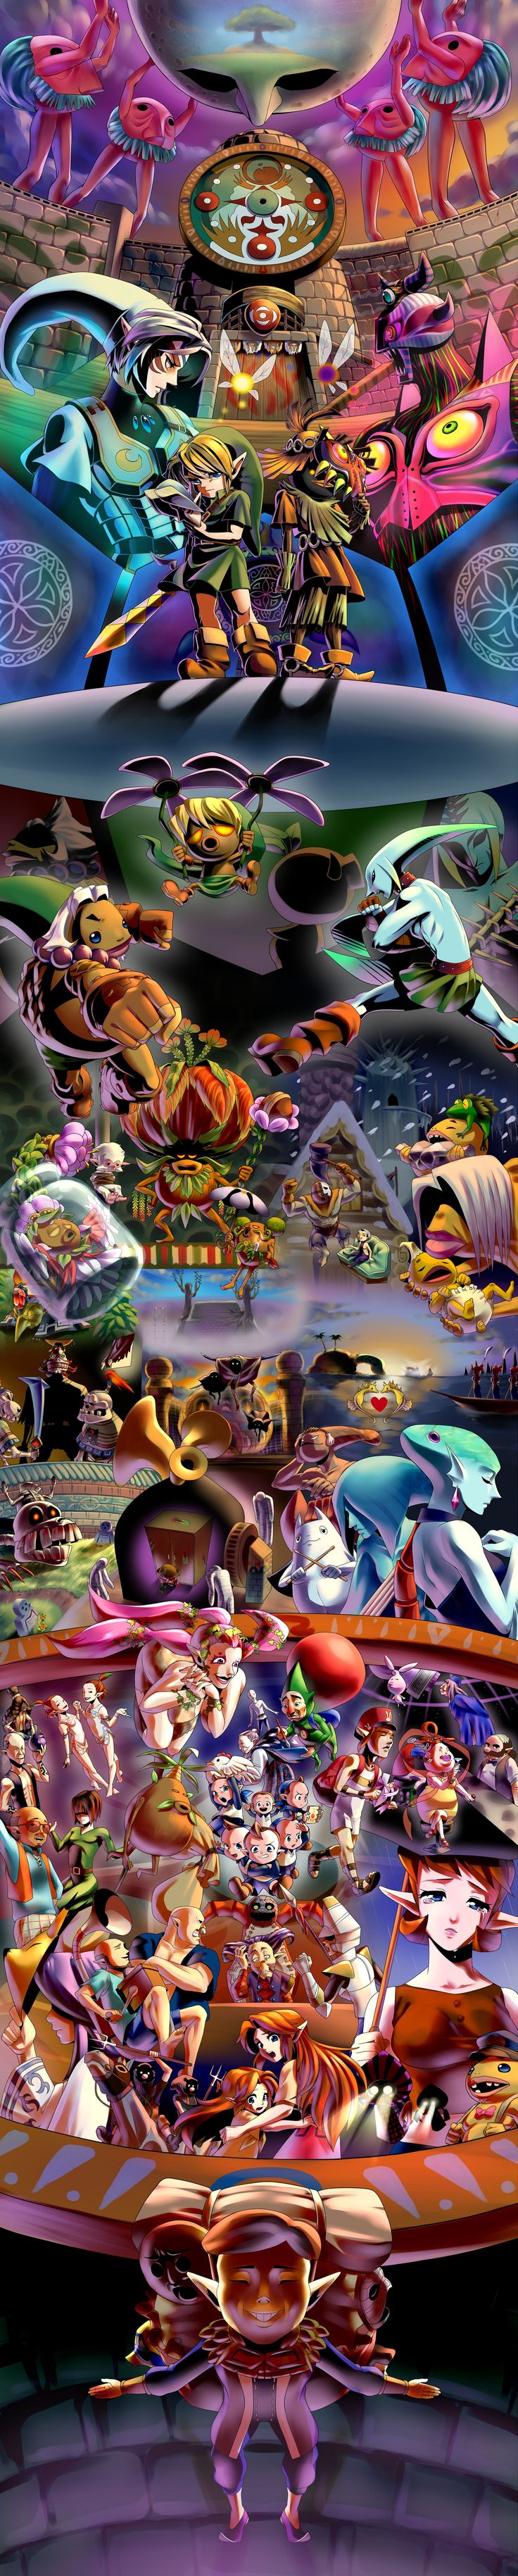 The Legend of Zelda: Majora's Mask / Young Link, Tatl, Skull Kid, and etc. 「ムジュラの仮面3D発売! | #MM3D